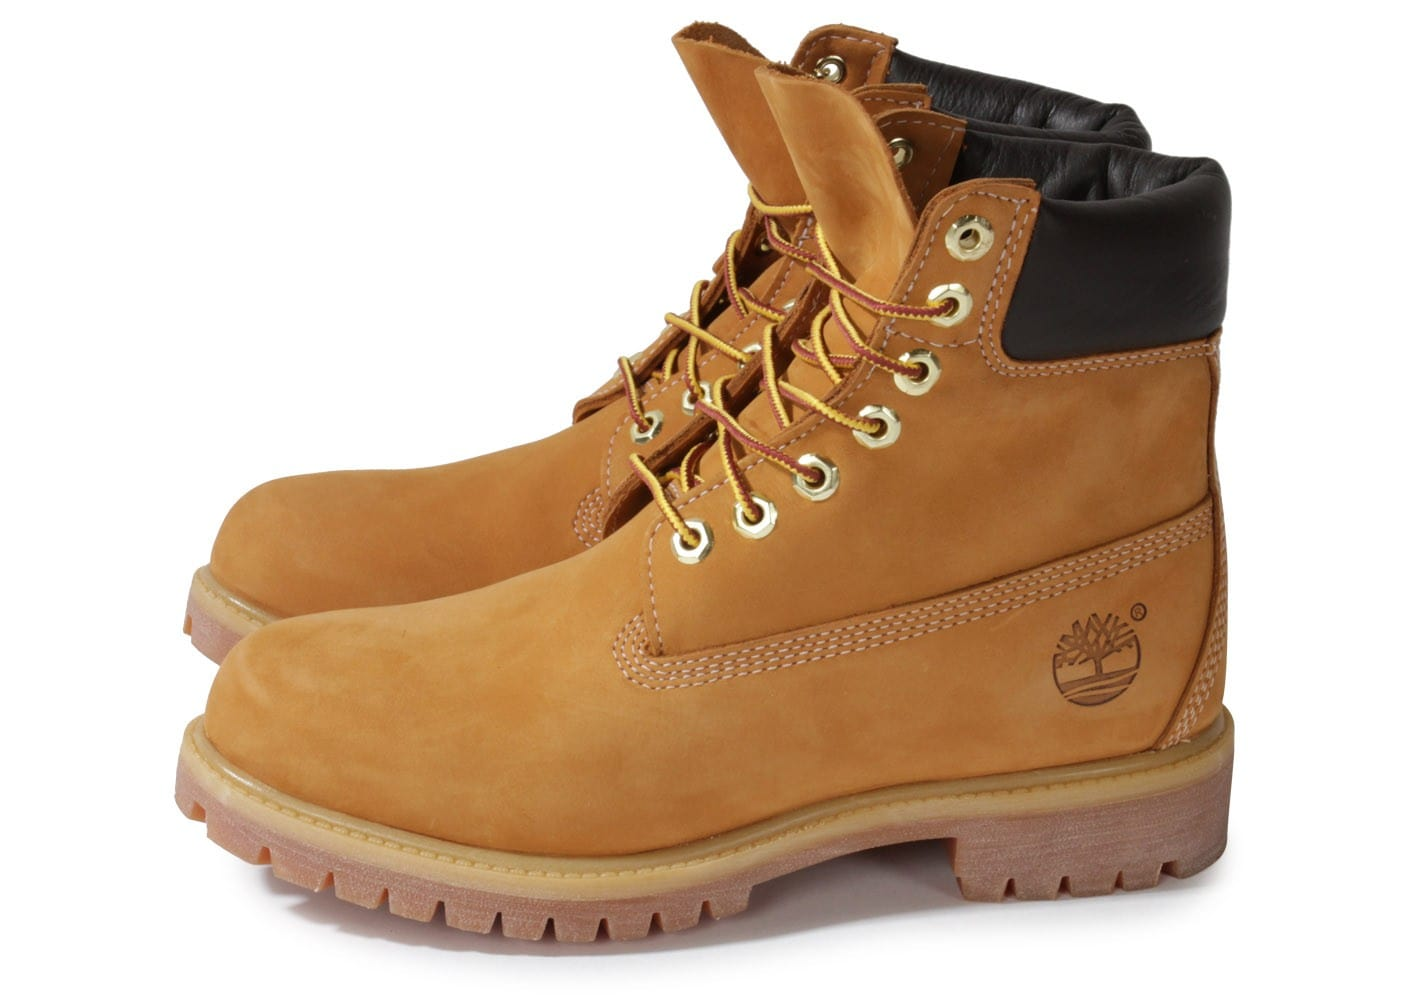 timberland 6 inch premium boot beige chaussures homme chausport. Black Bedroom Furniture Sets. Home Design Ideas